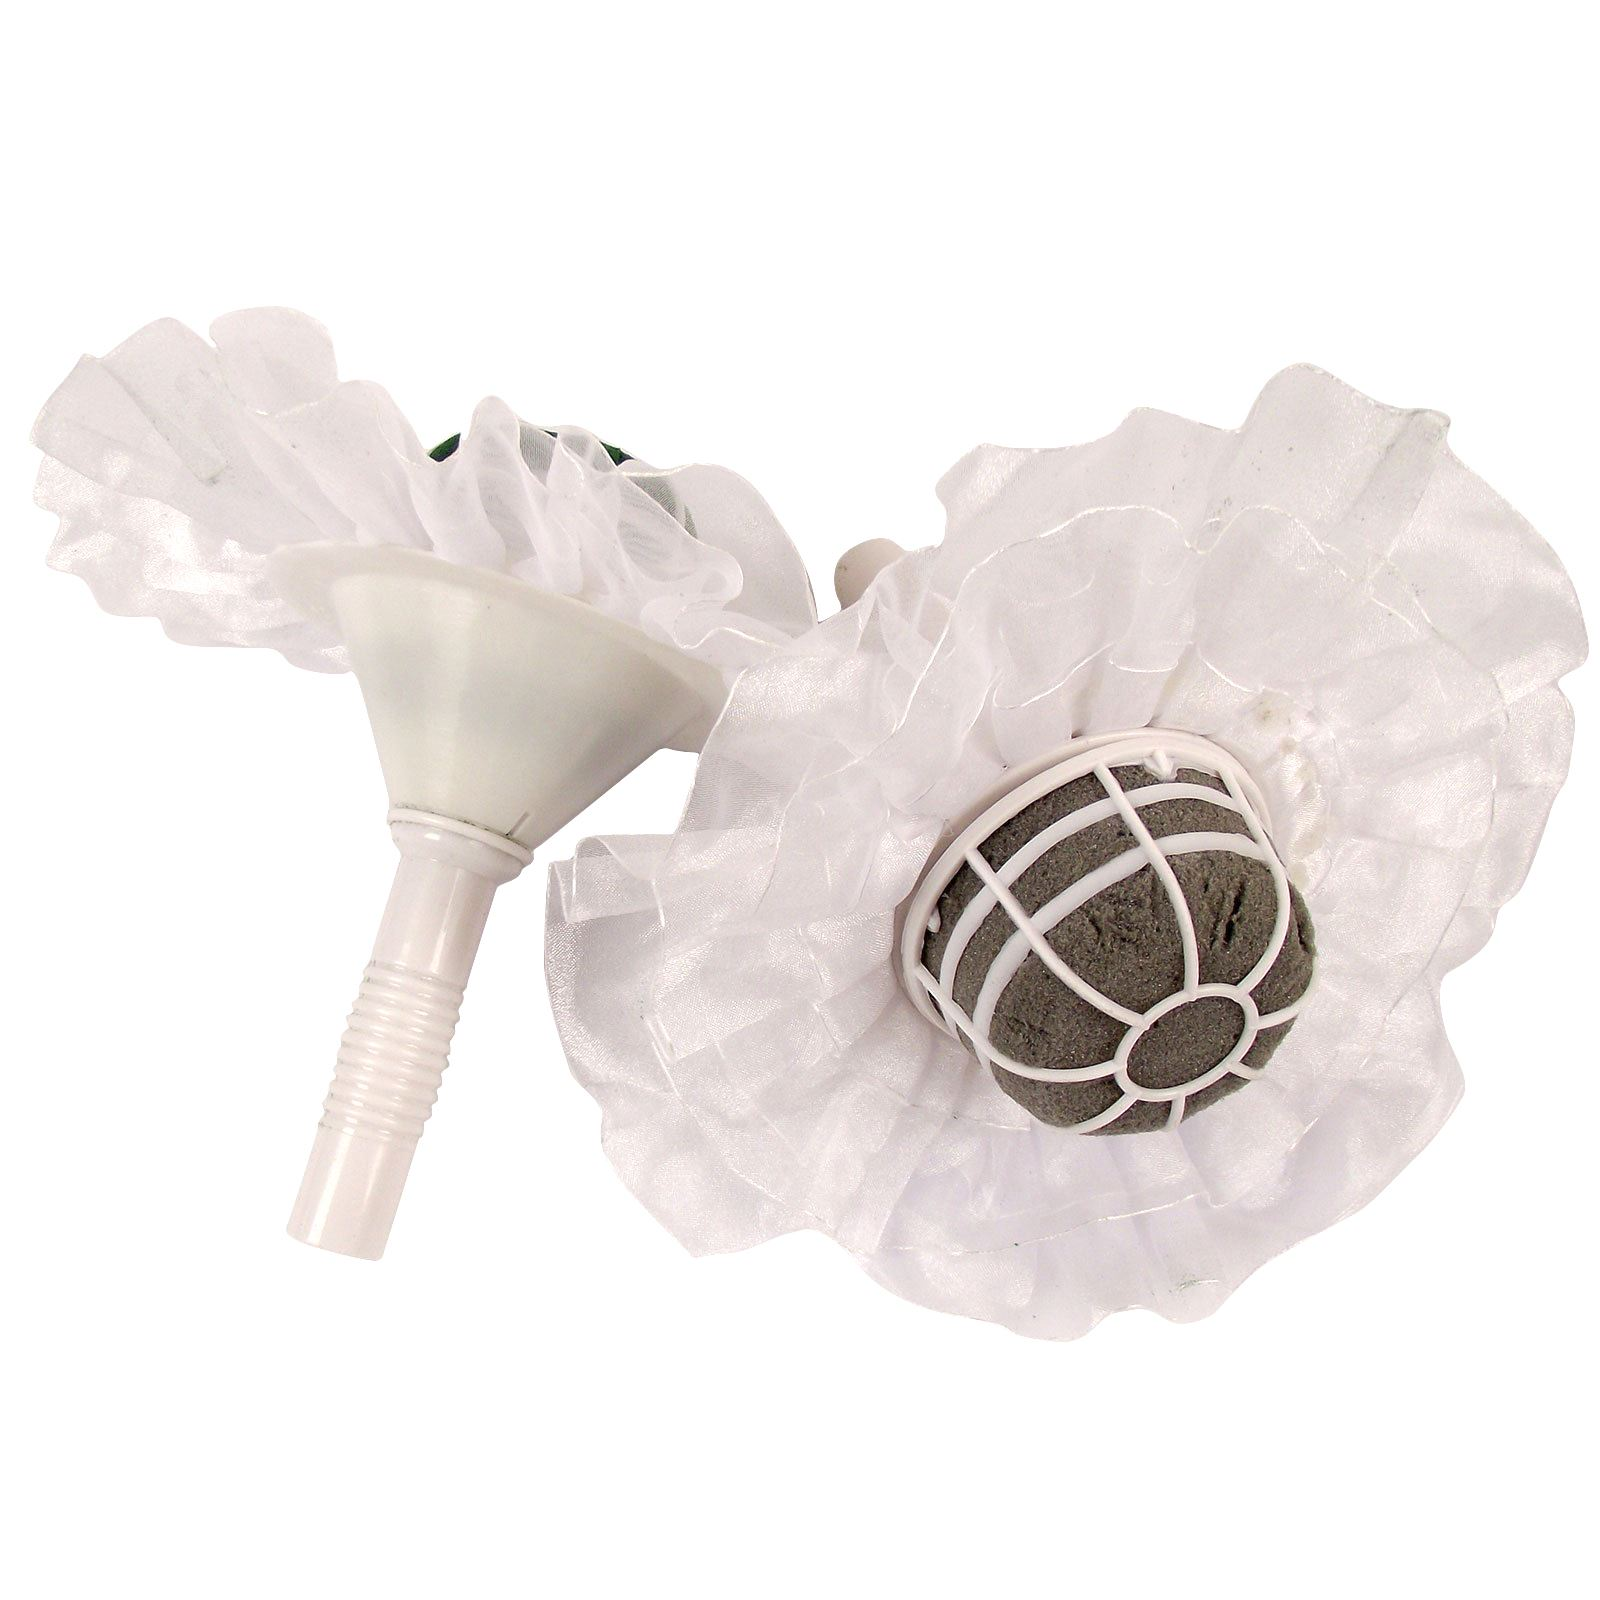 Bridal Bouquet Holder Oasis : Foam bouquet holders with frills oasis wedding belle sec